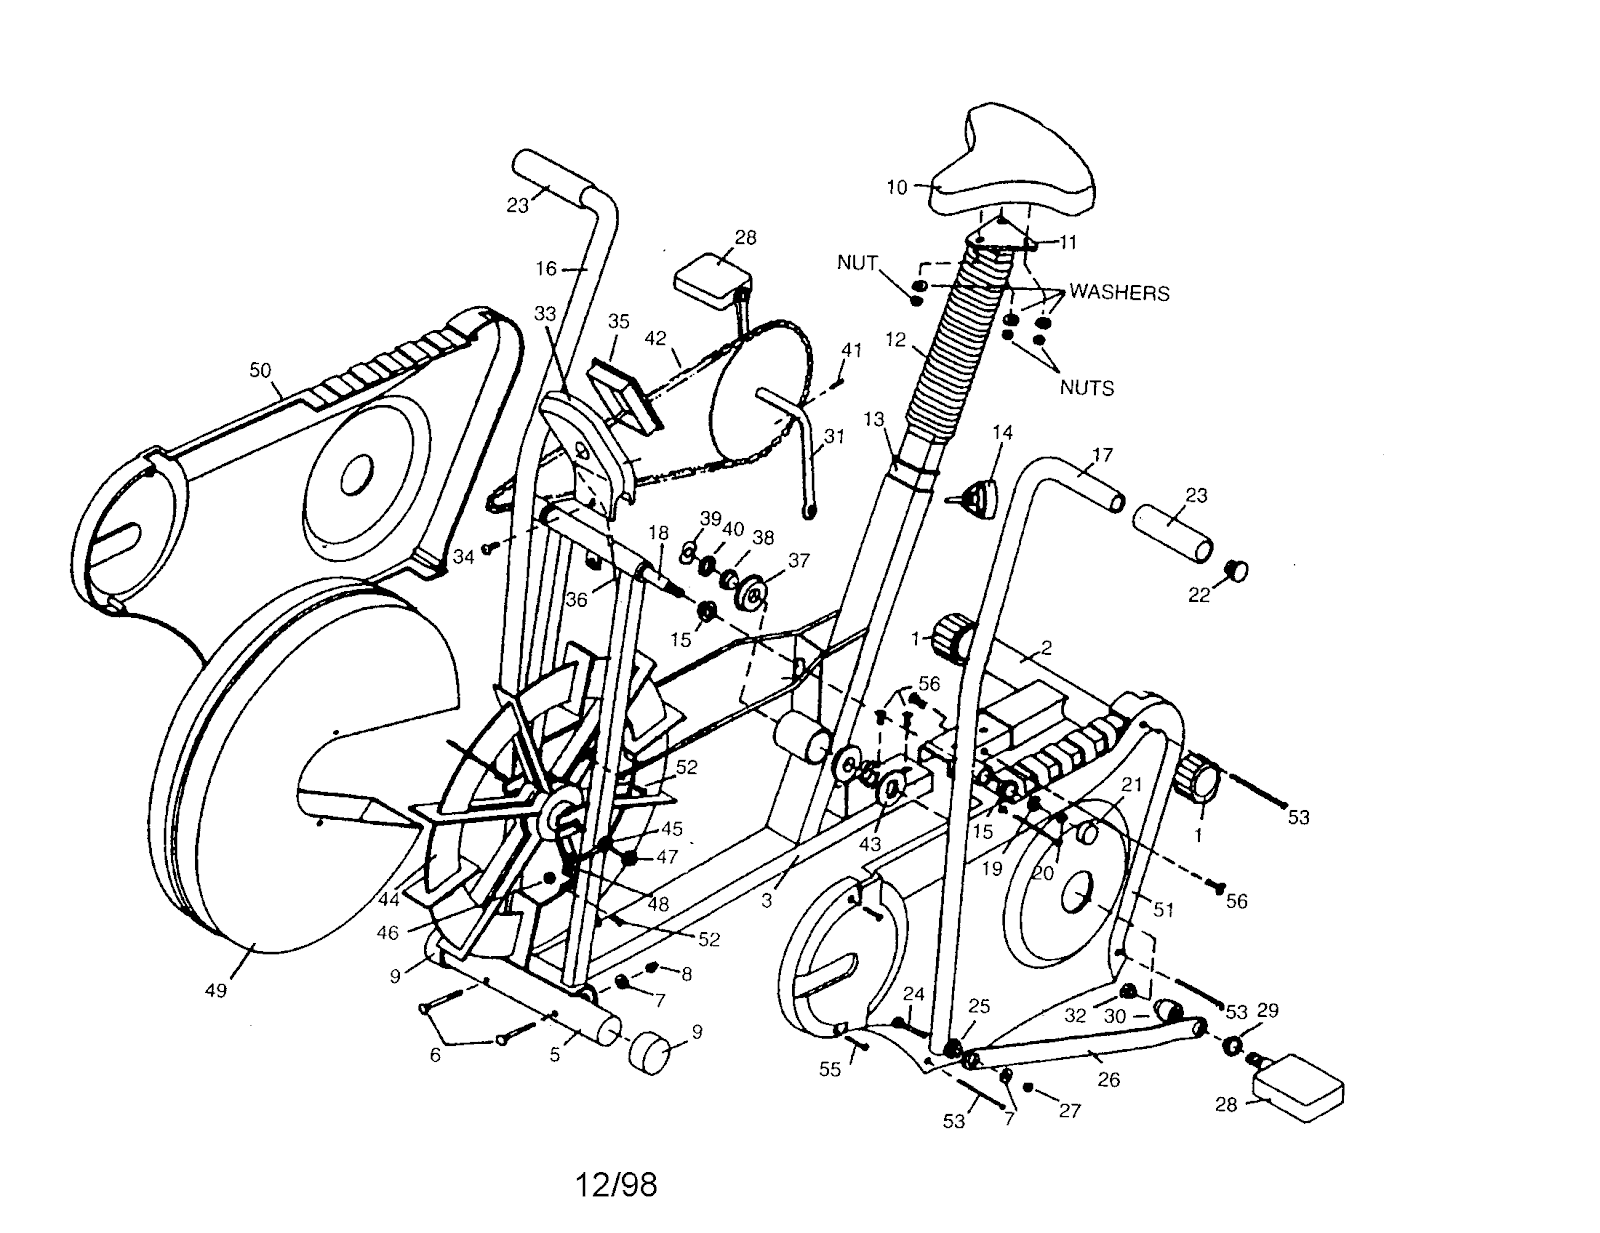 Diagram Showing Parts Of A Bicycle Best Electrical Circuit Wiring Bmx Bike Diagrams Huffy Trek